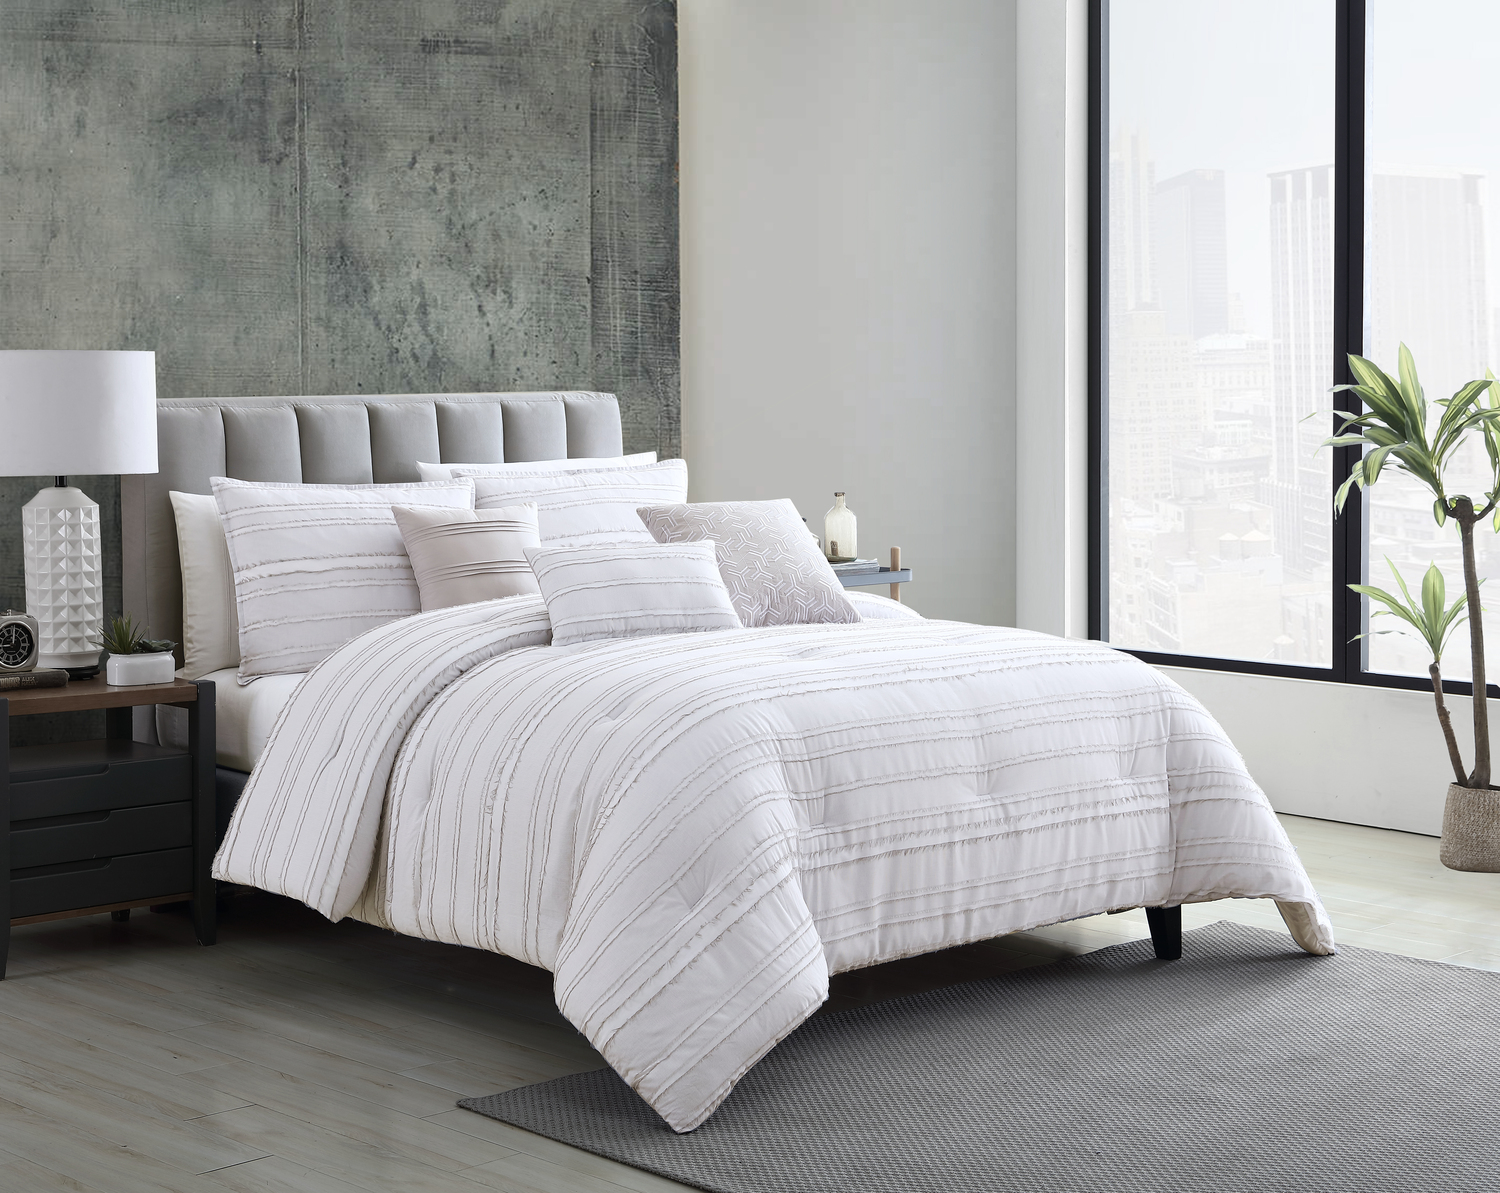 Boston by Riverbrook Home Bedding